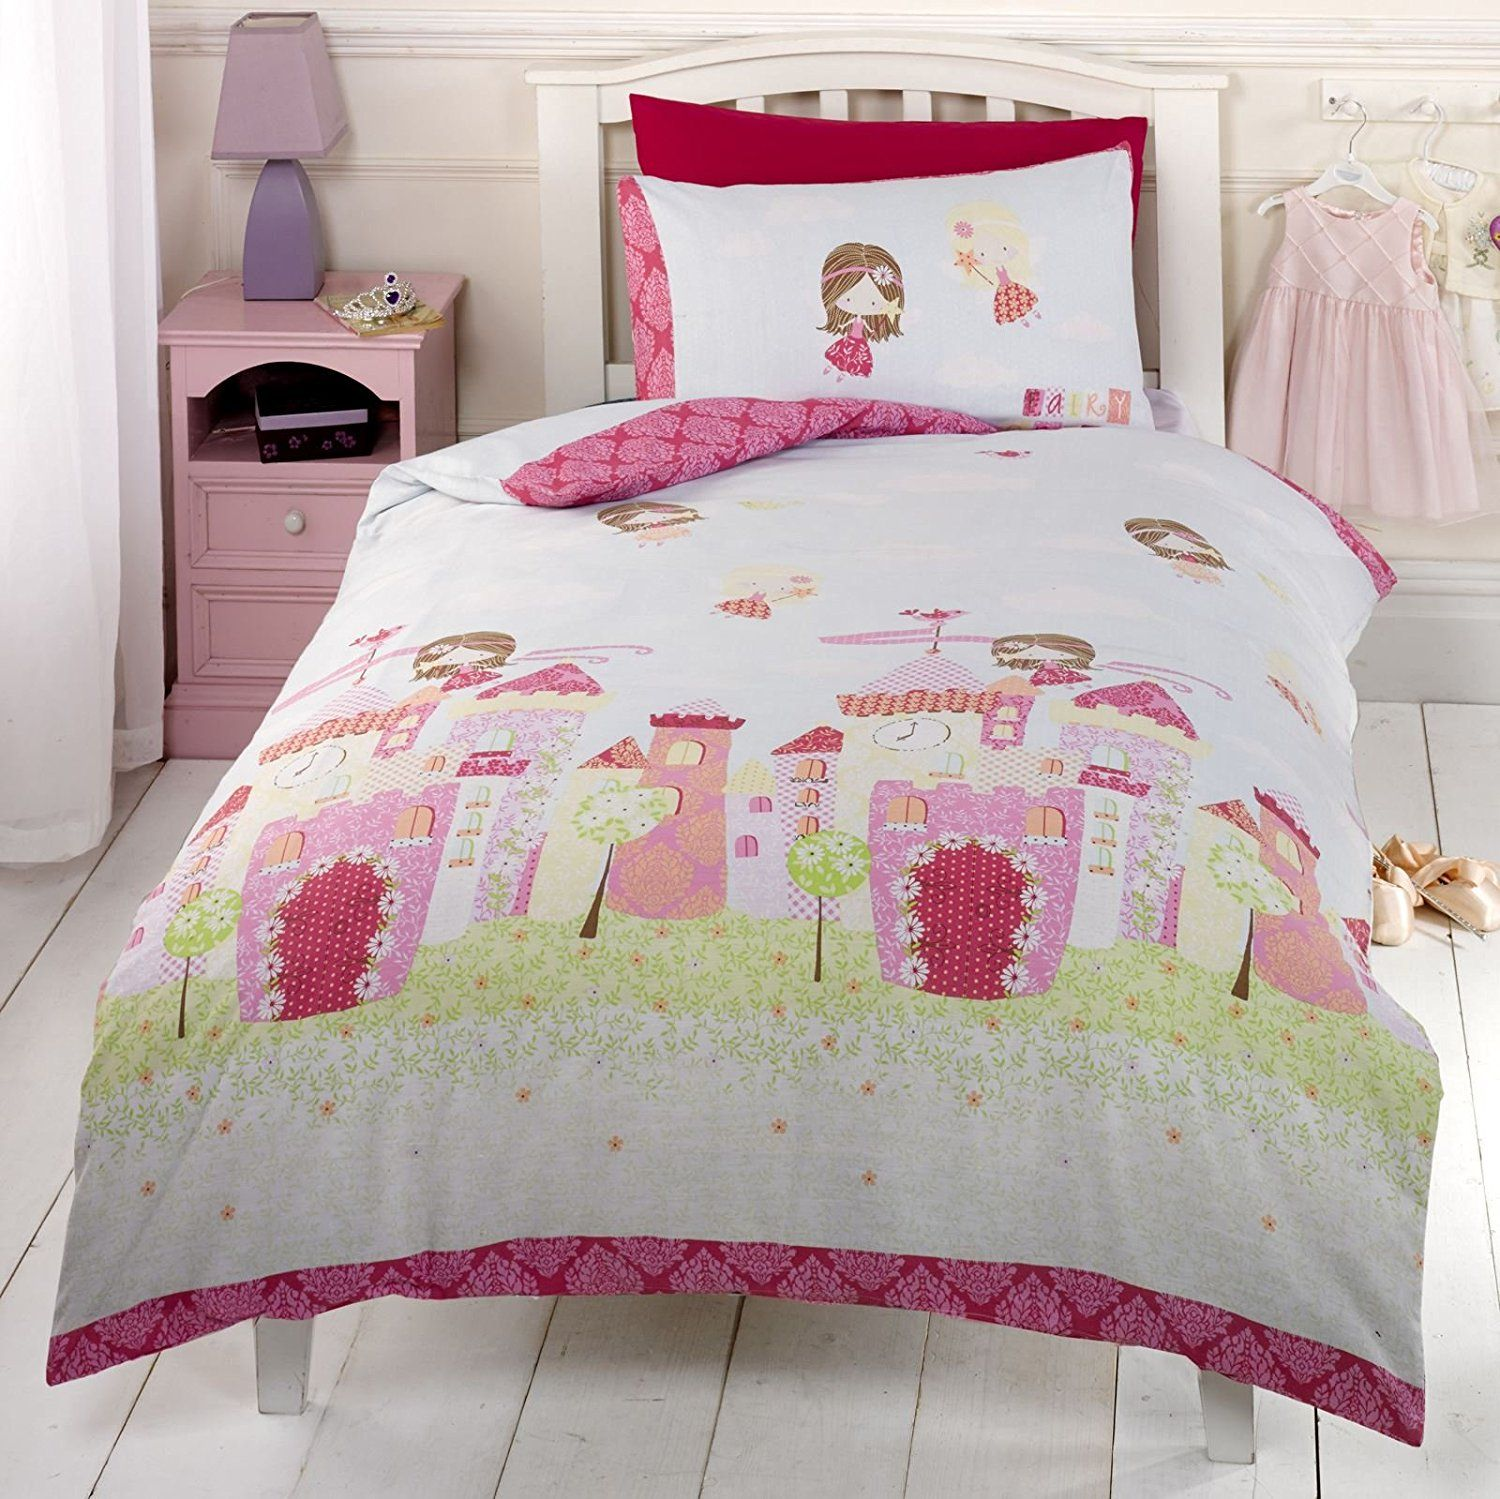 Bedroom sets for girls pink - Girls Pink Fairy Castle Fairy Tale Princess Single Duvet Cover Bedding Bed Set